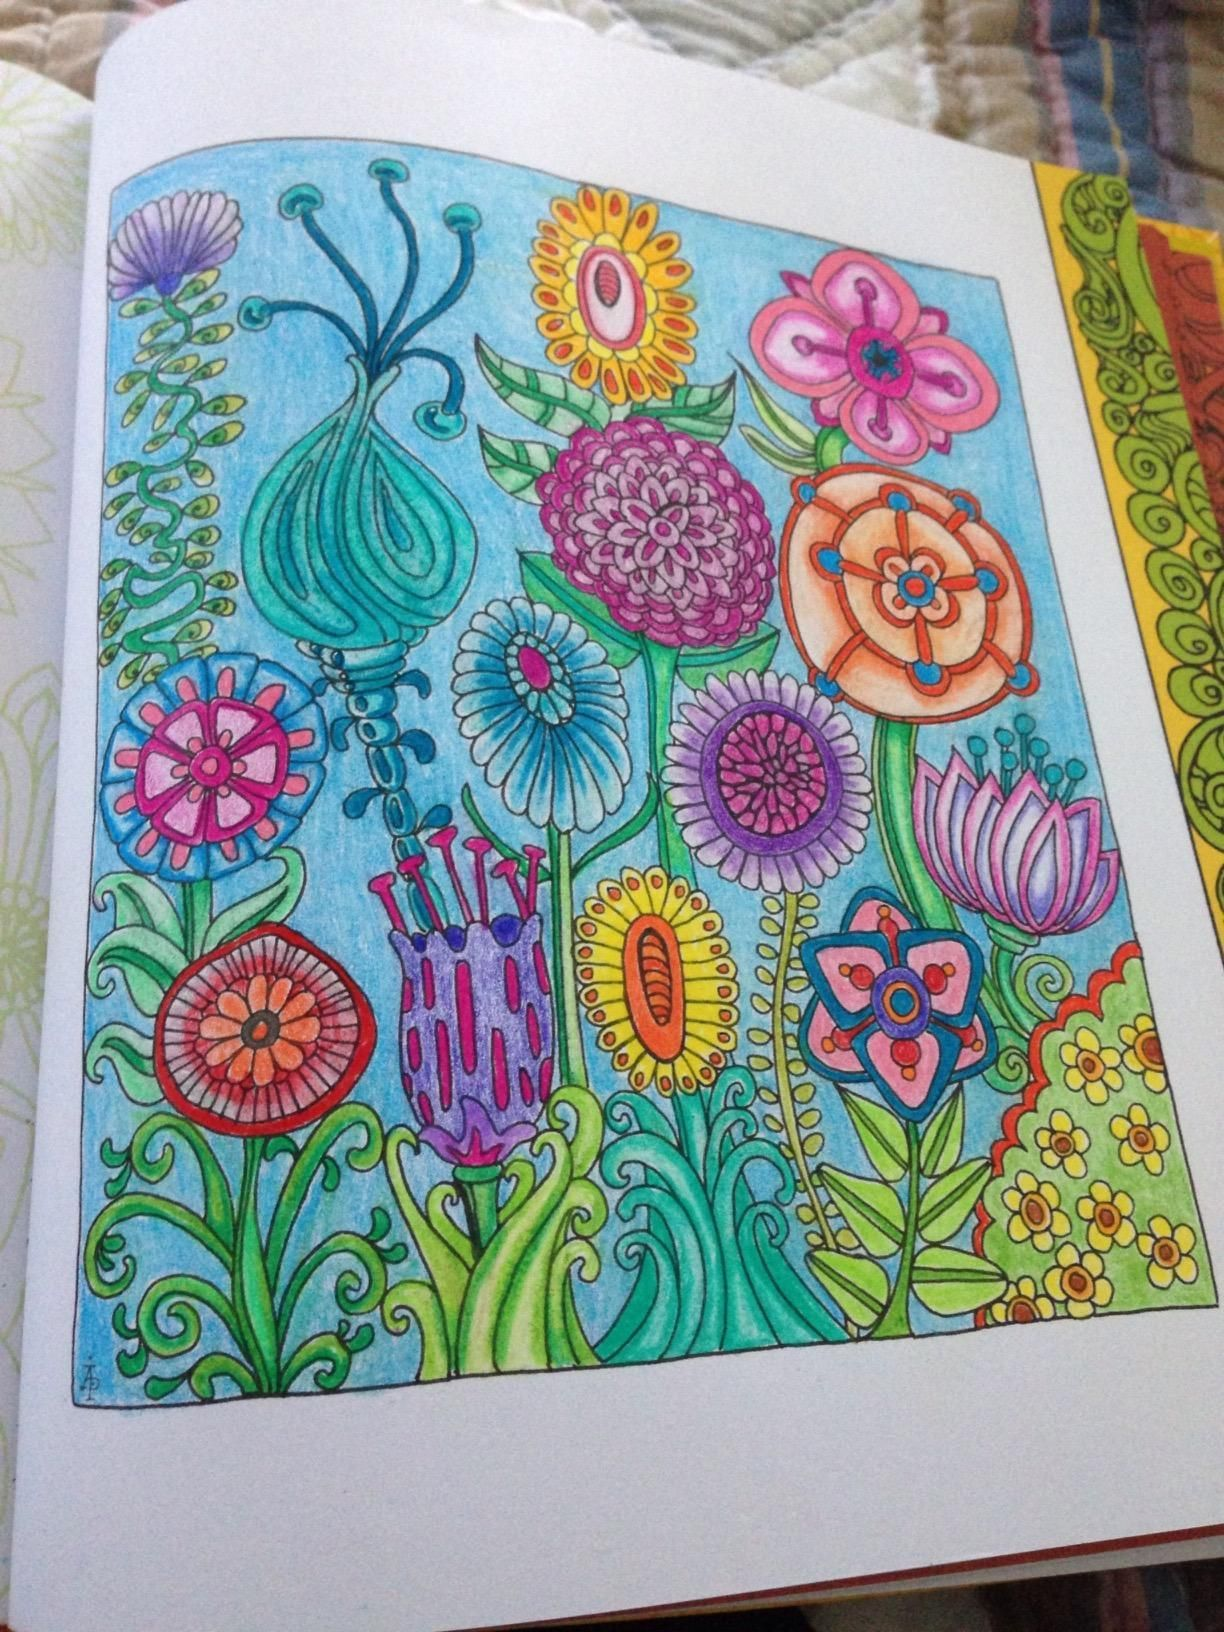 Color Me Happy 100 Coloring Templates That Will Make You Smile A Zen Book Lacy Mucklow Angela Porter 9781937994761 Amazon Books